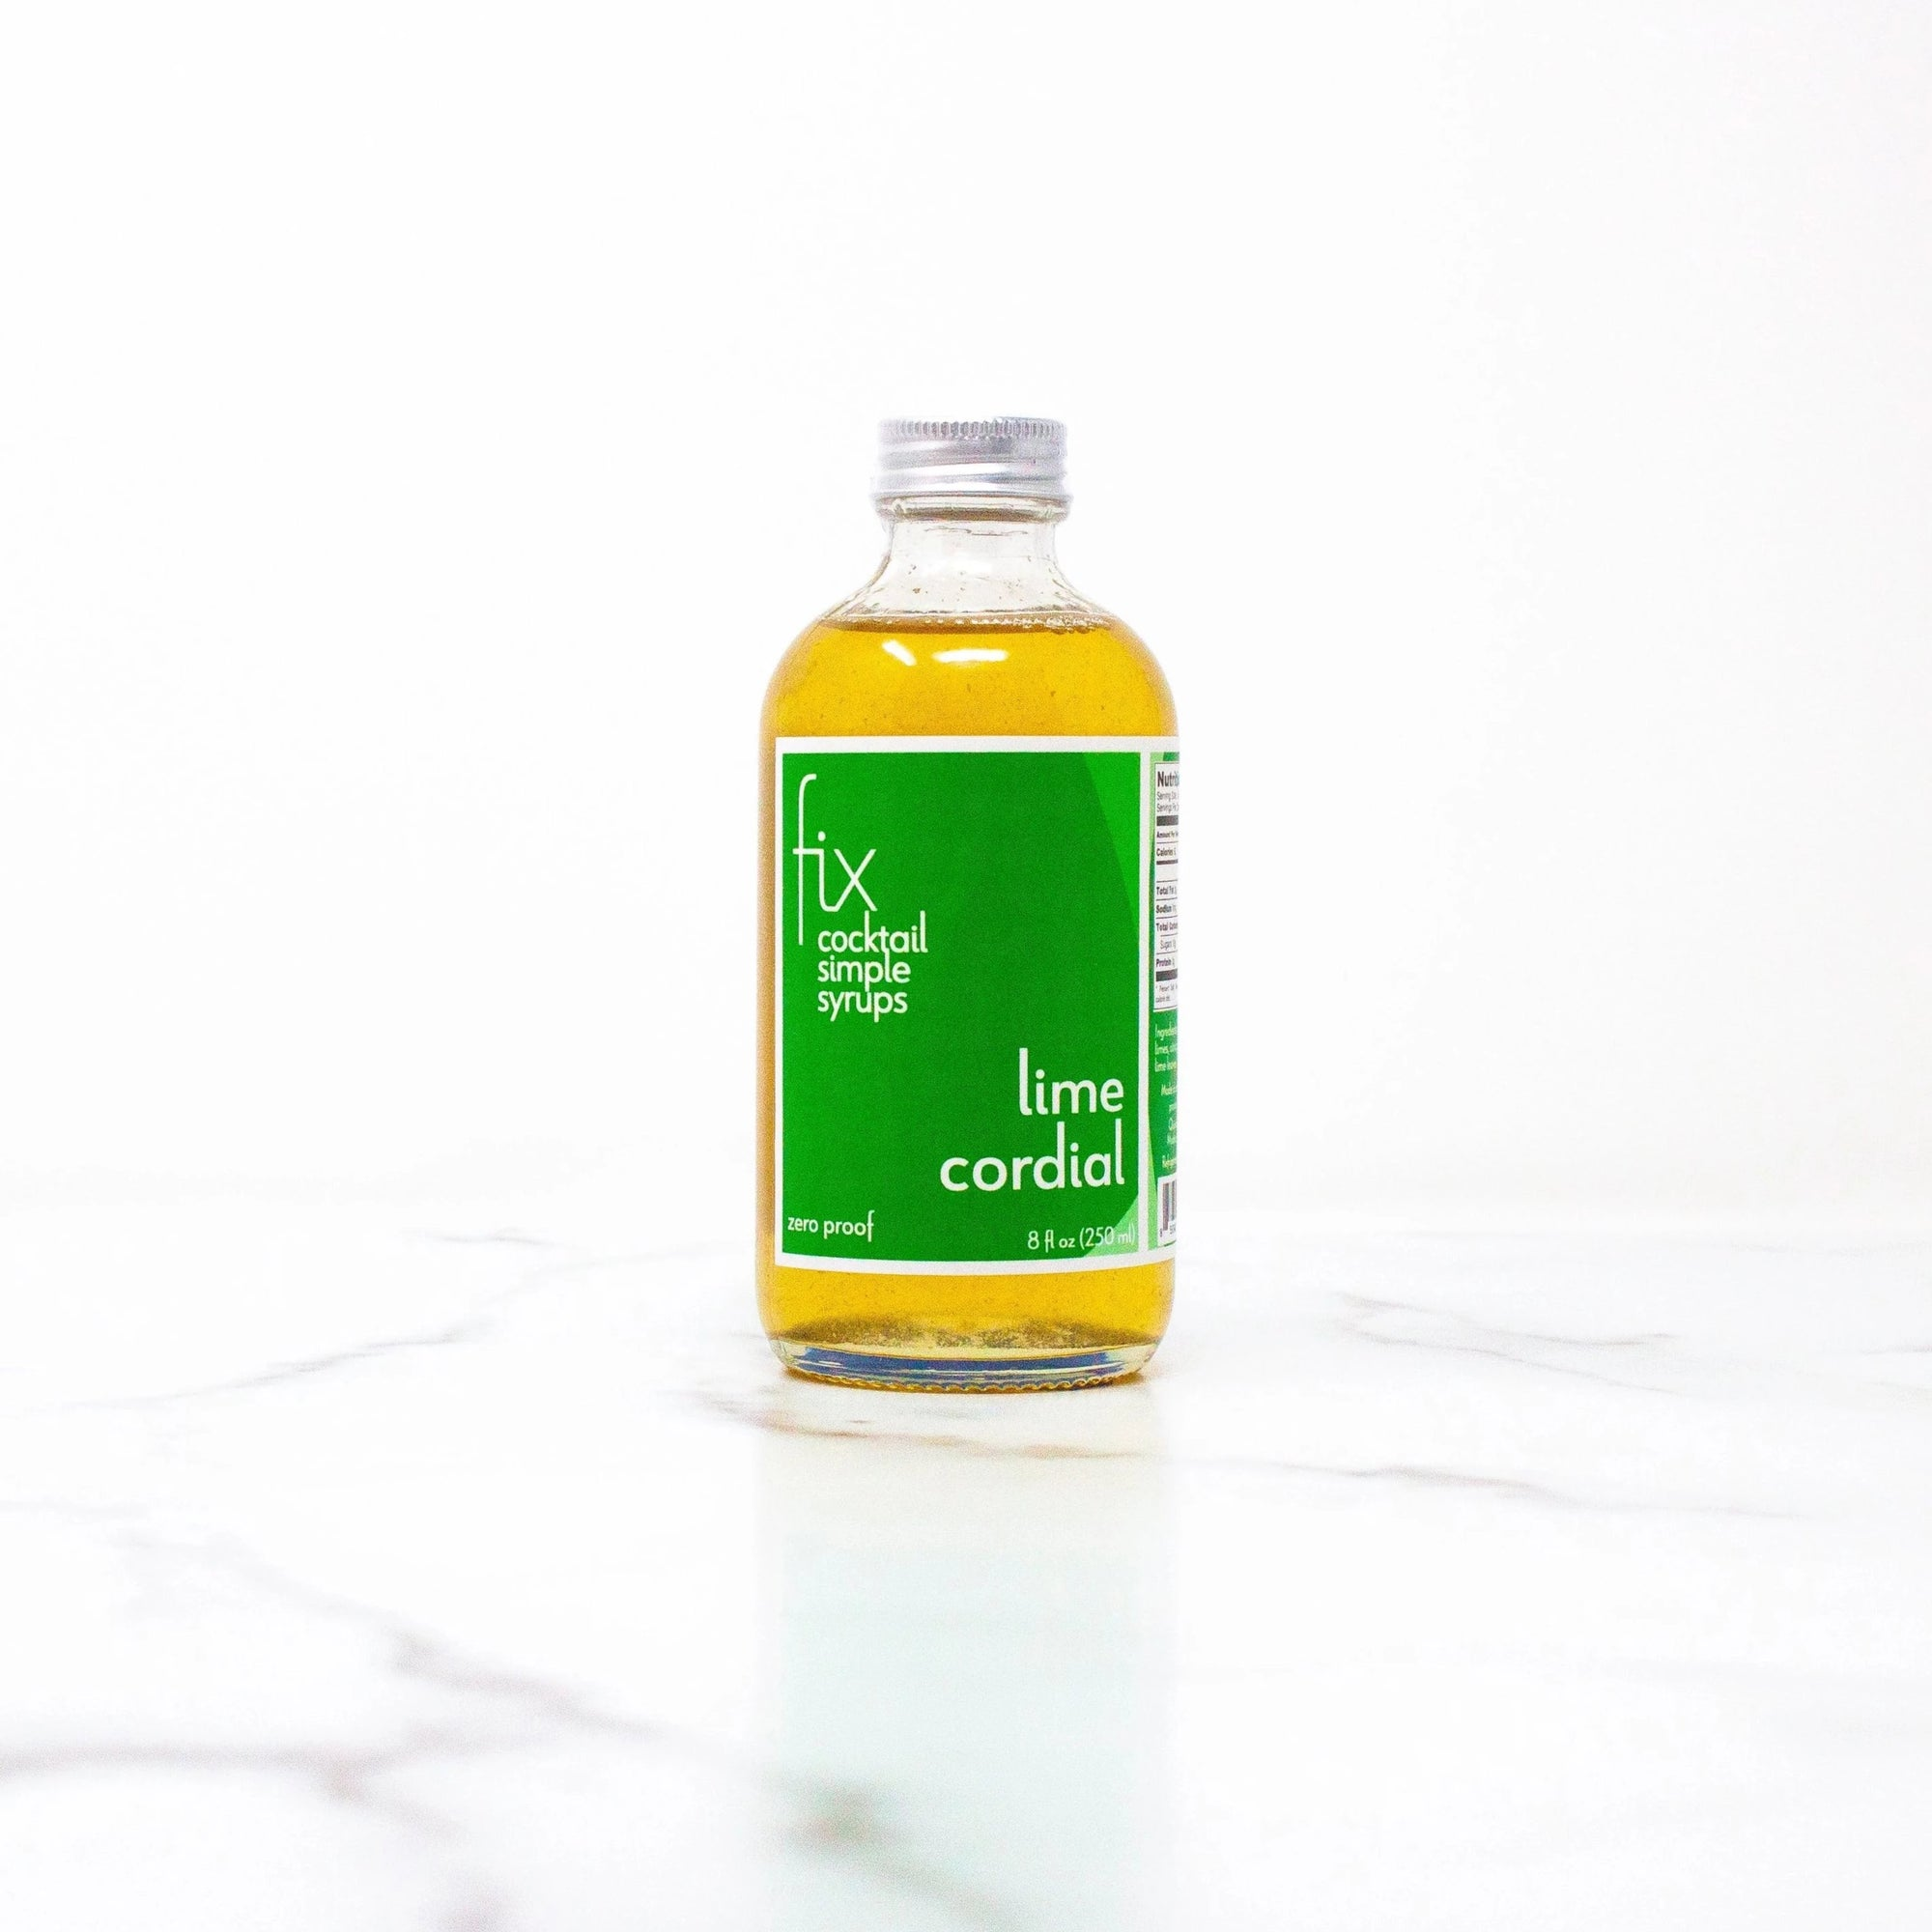 Lime Cordial simple syrup from Fix - 8 oz bottle